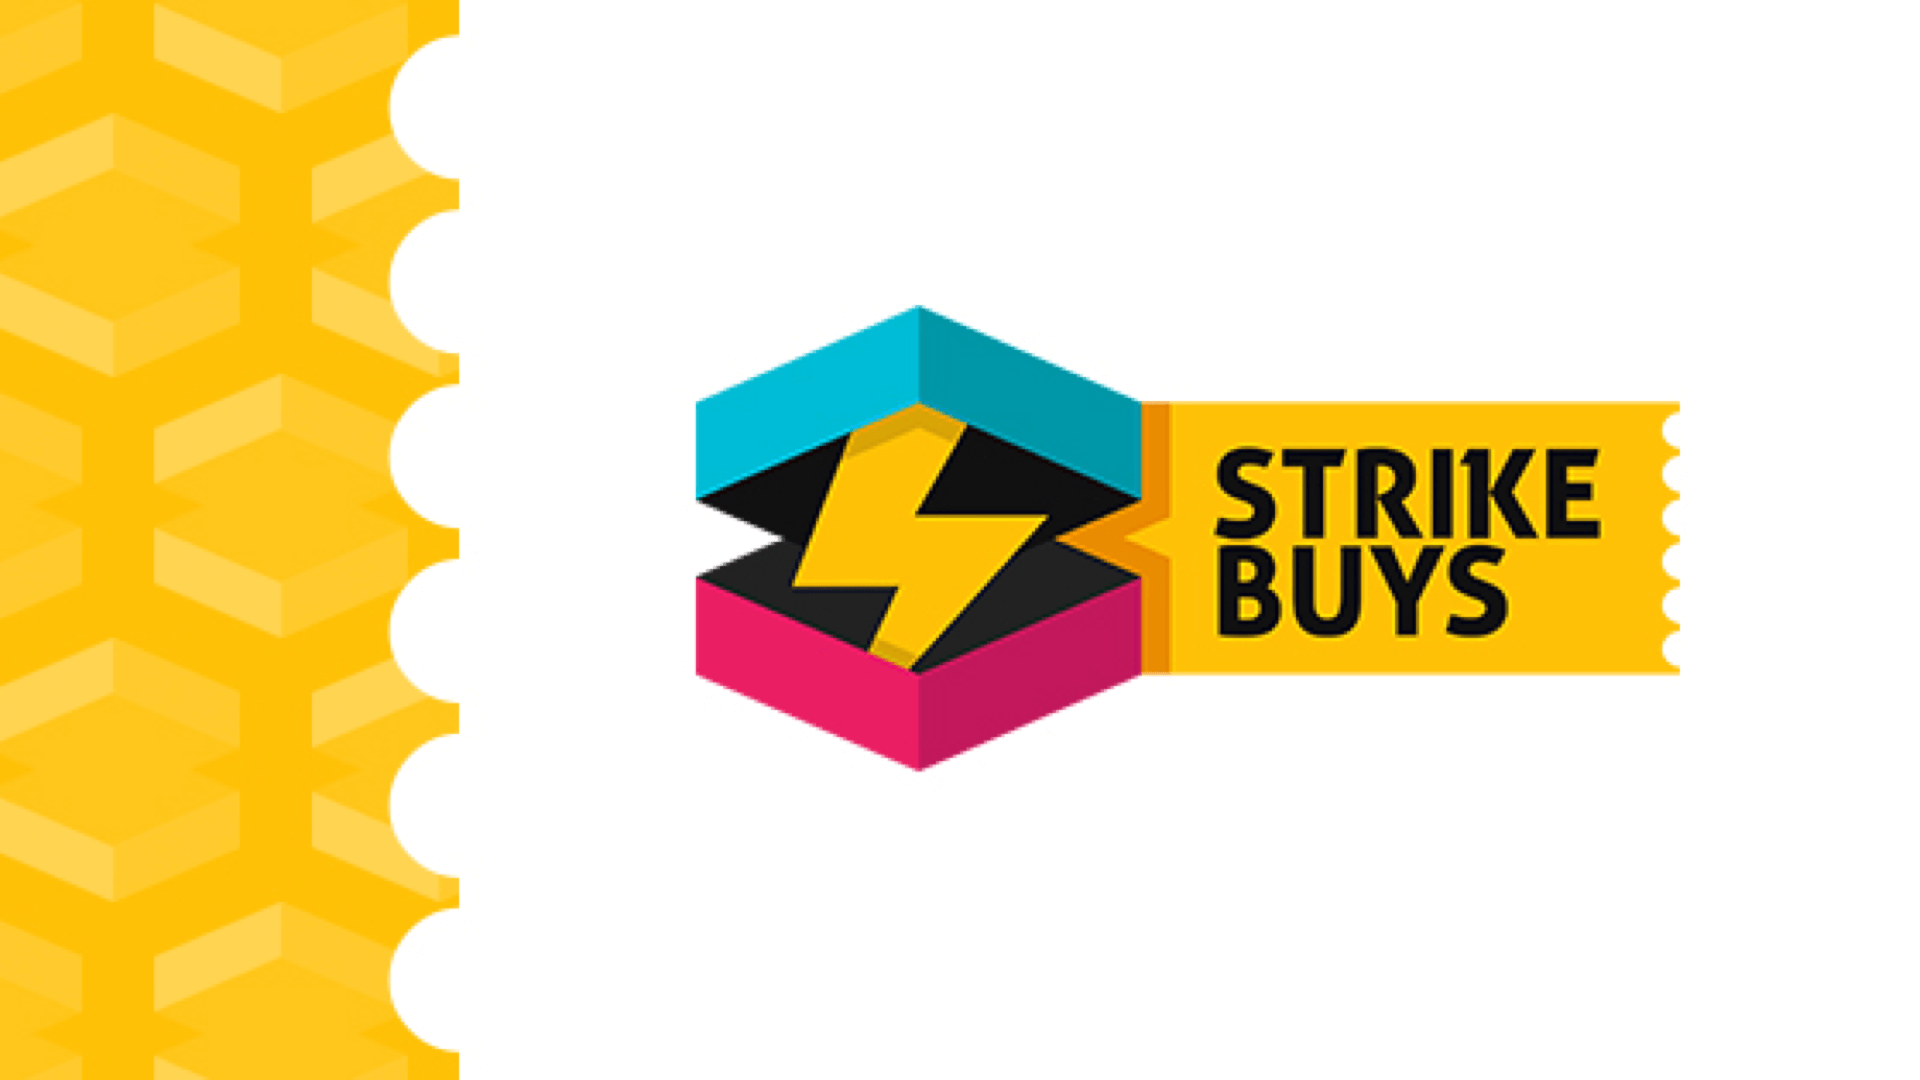 StrikeBuys